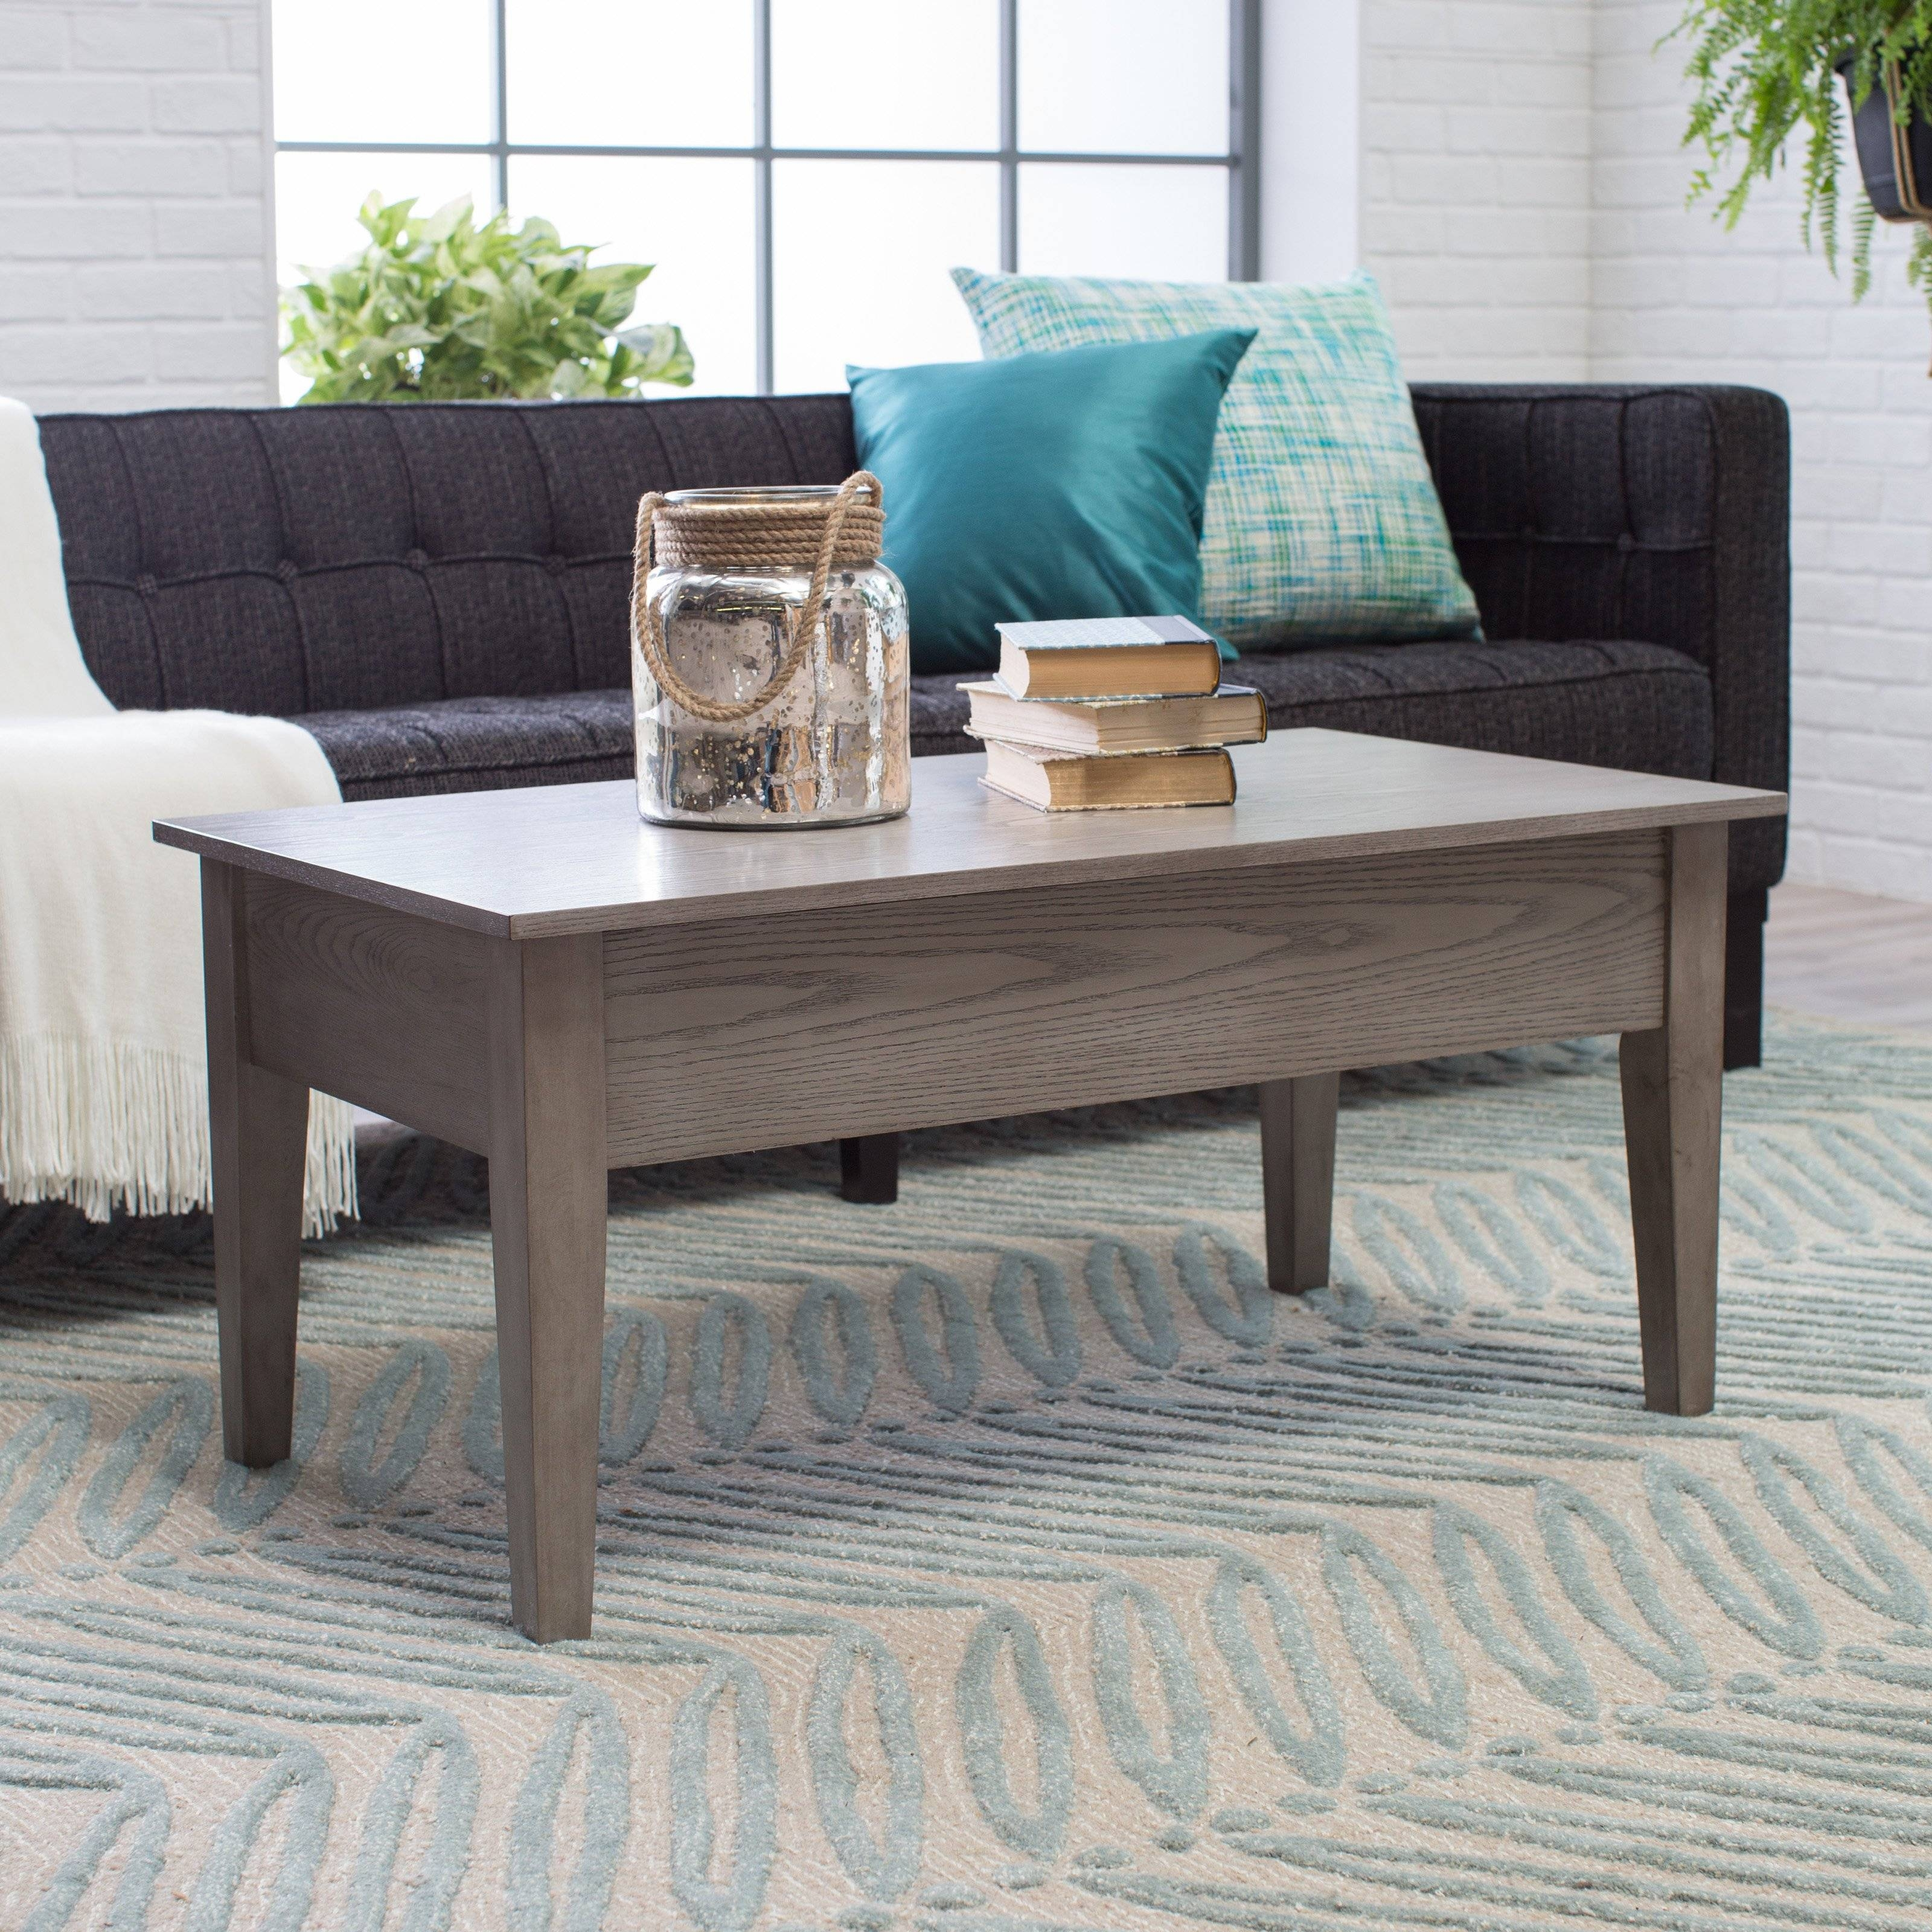 Turner Lift Top Coffee Table - Espresso | Hayneedle intended for Rising Coffee Tables (Image 28 of 30)